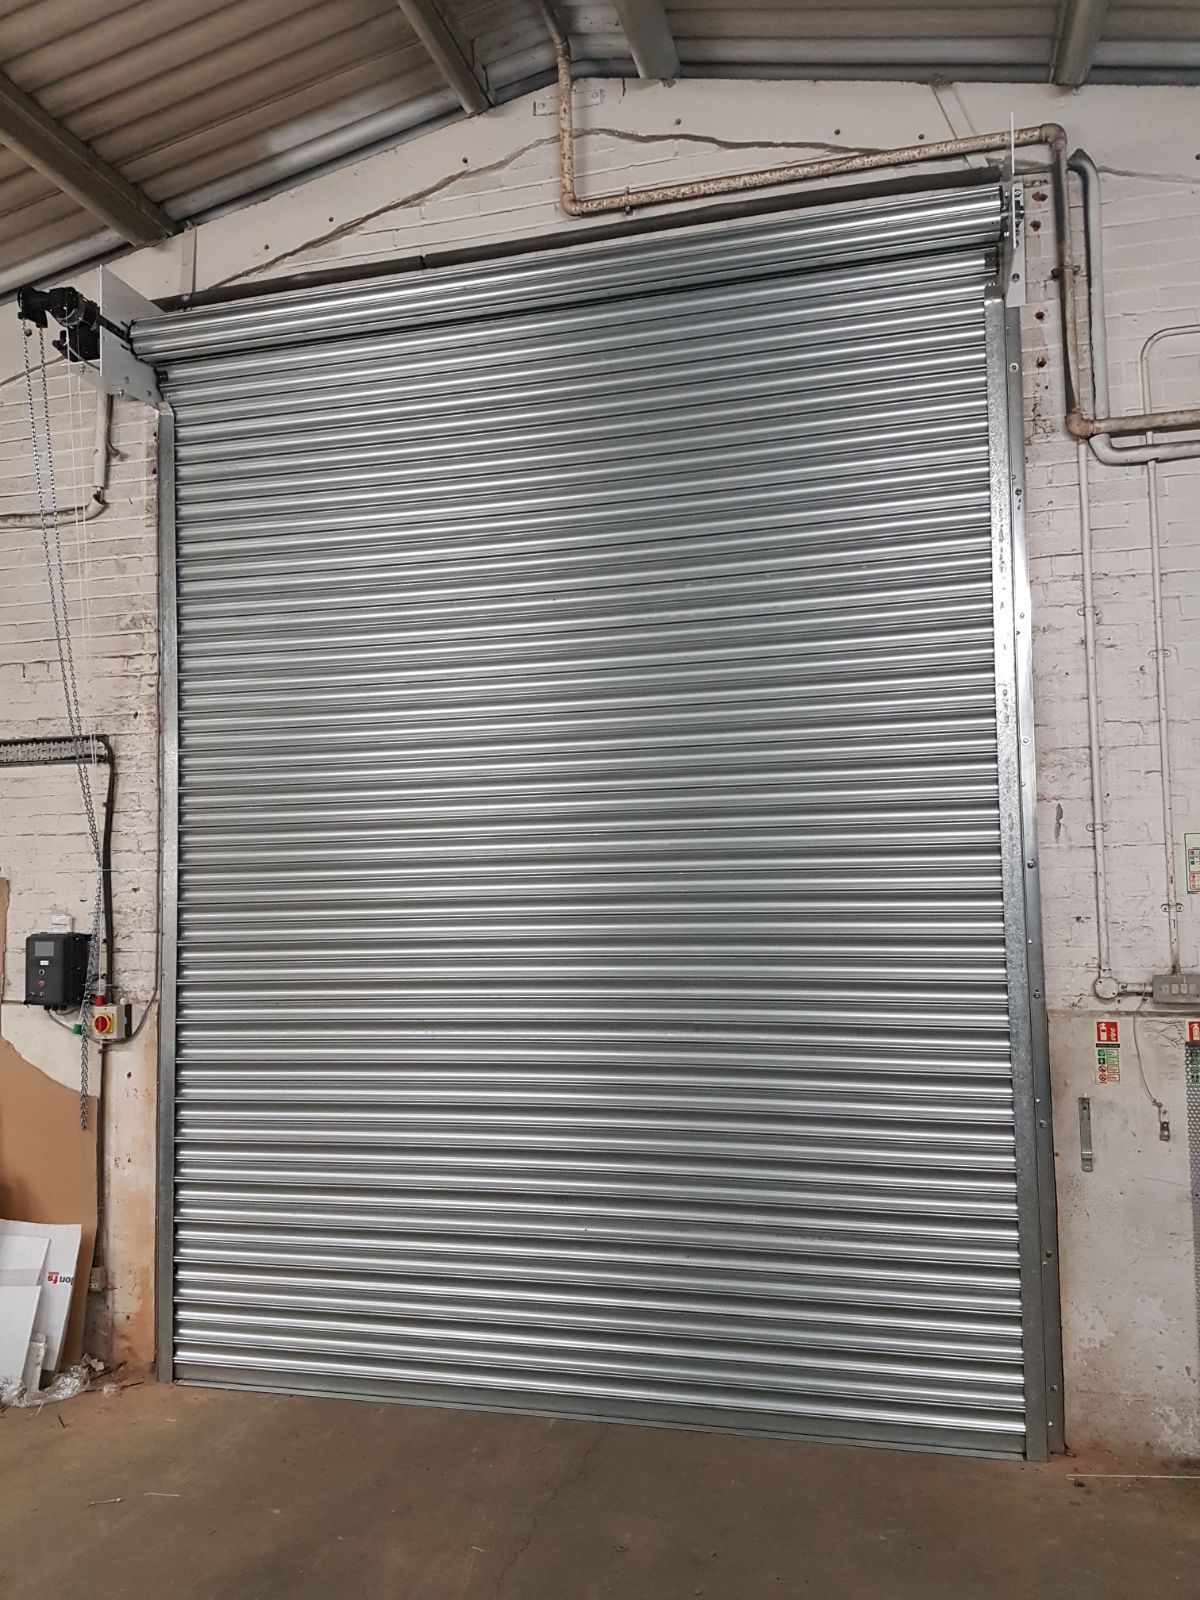 Job Done Happy Client Time To Go Home If You Need Industrial Shutters You Know Where We Are Https Www Roller Shutters Shutters Aluminum Shutters